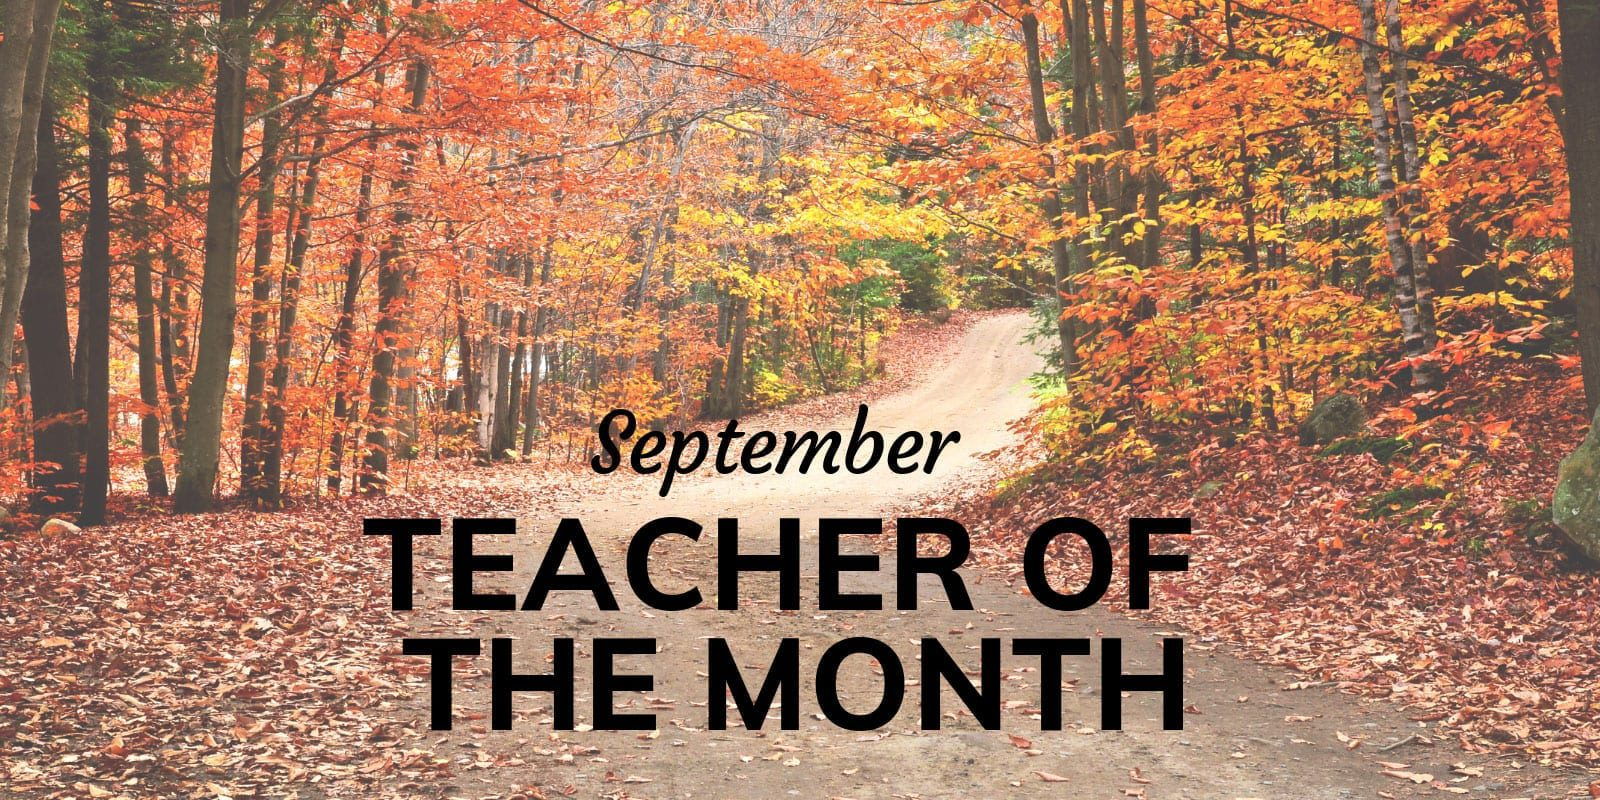 Little Sunshine's Playhouse Teacher of the Month September